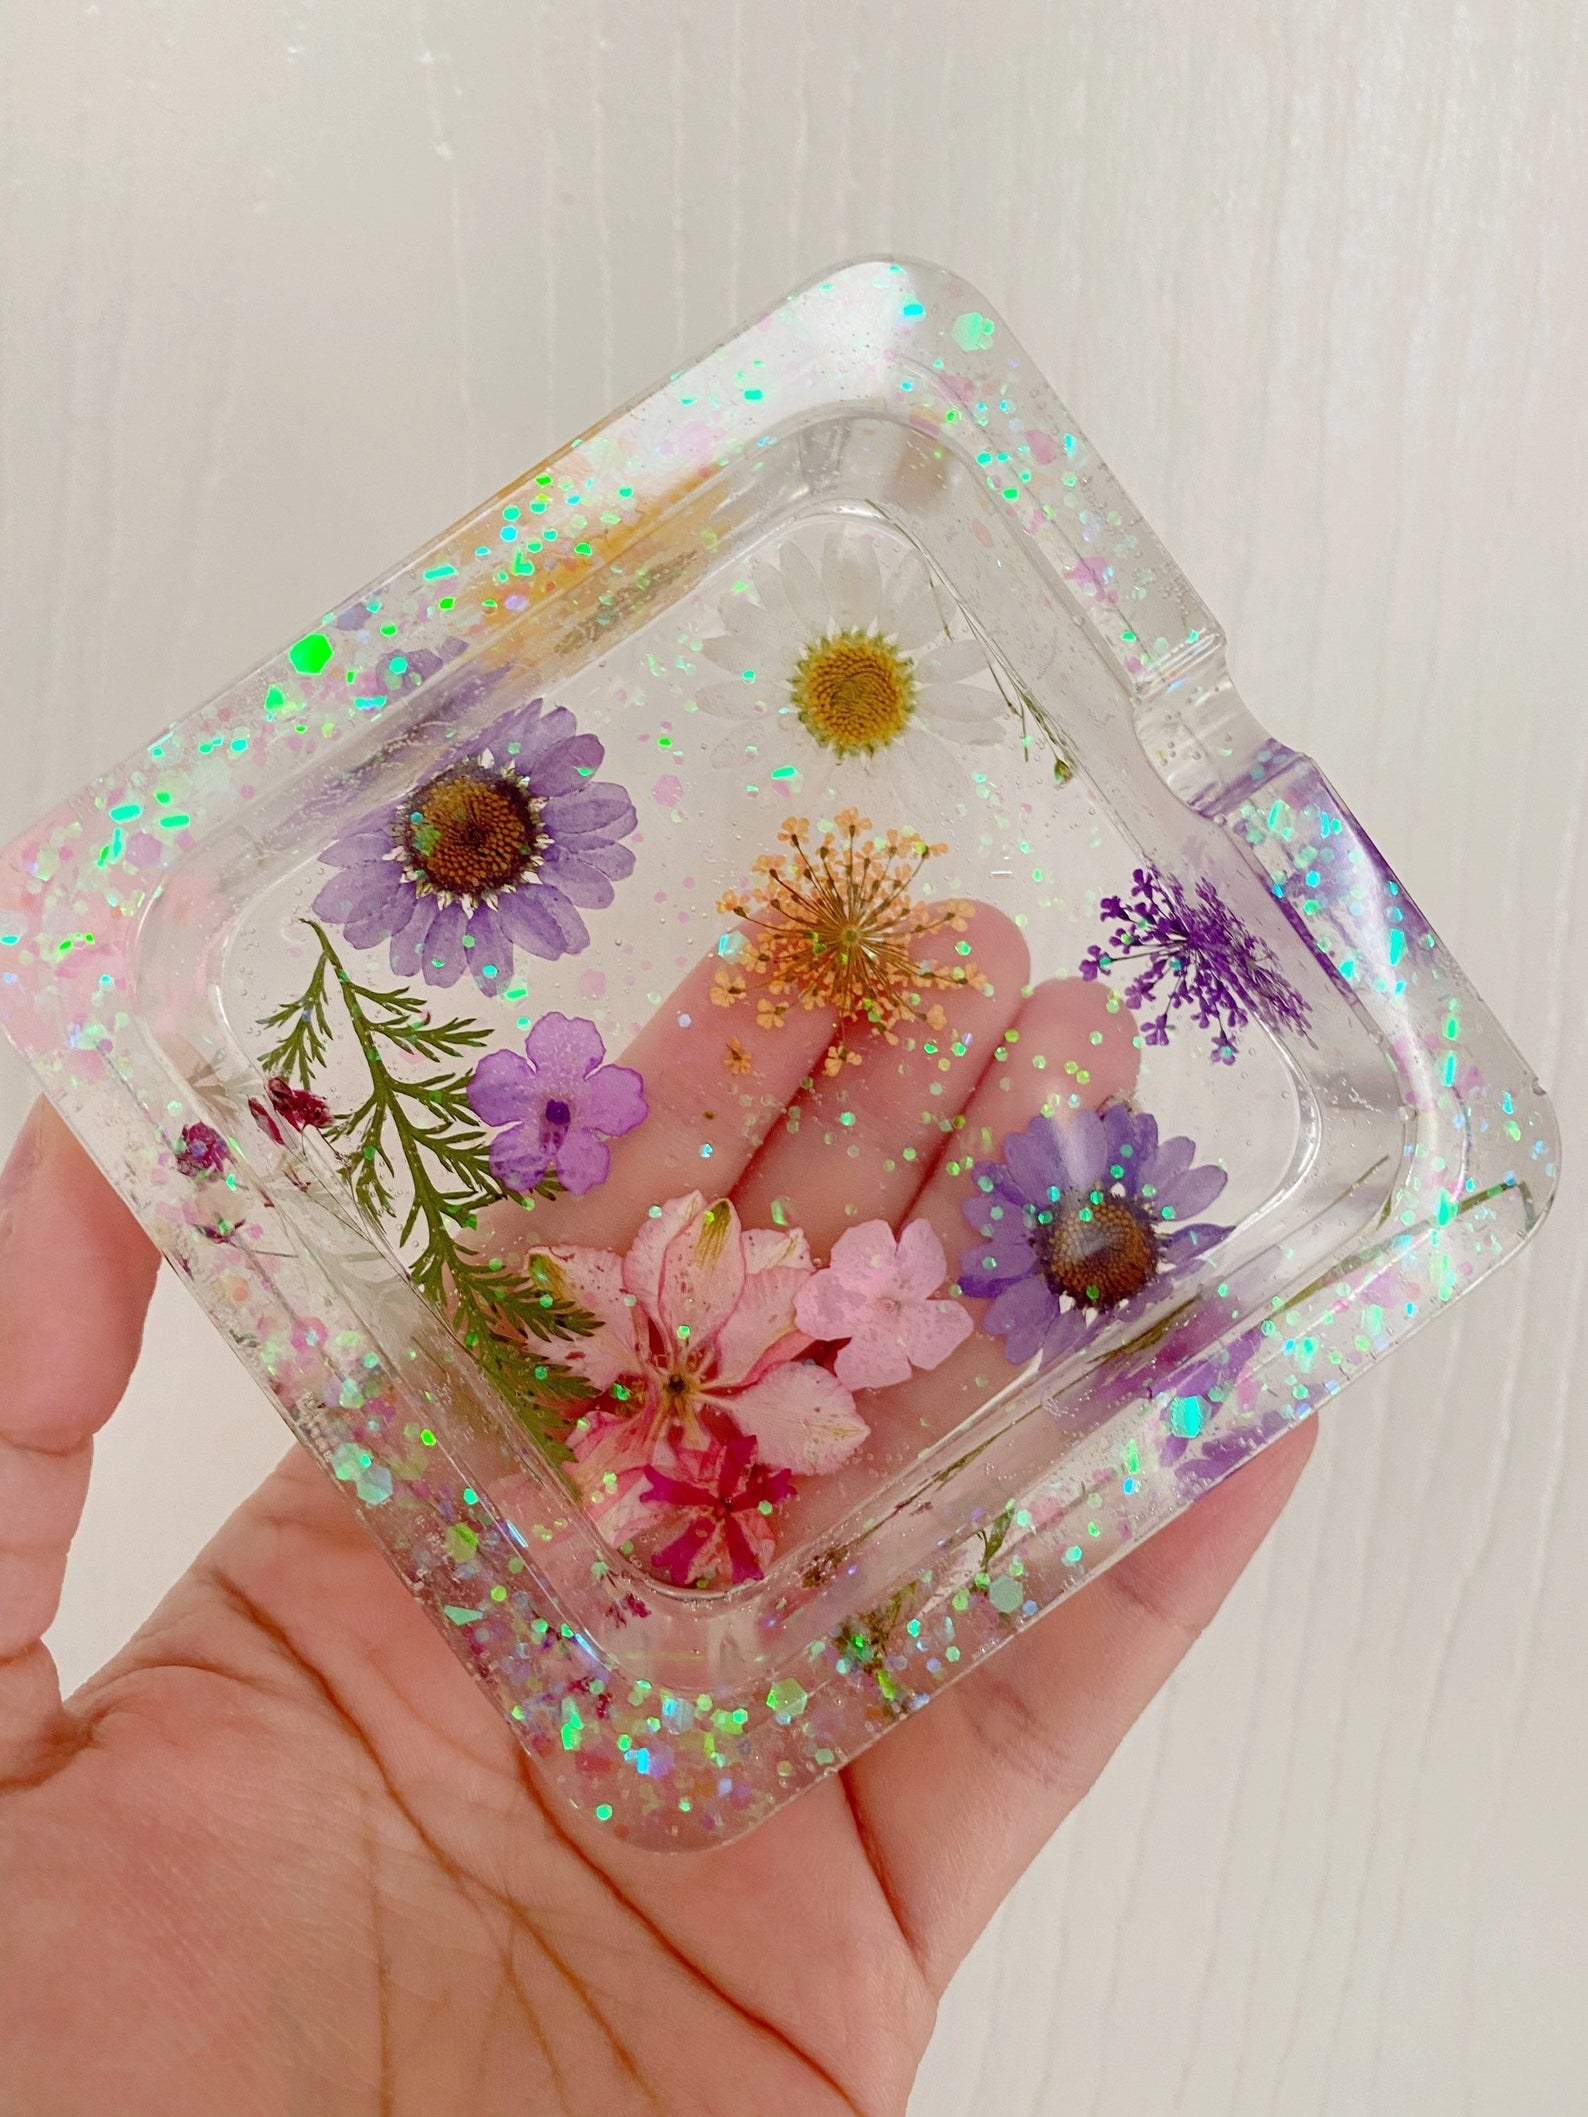 hand holding a square clear ashtray with iridescent glitter flecks and dried flowers inside